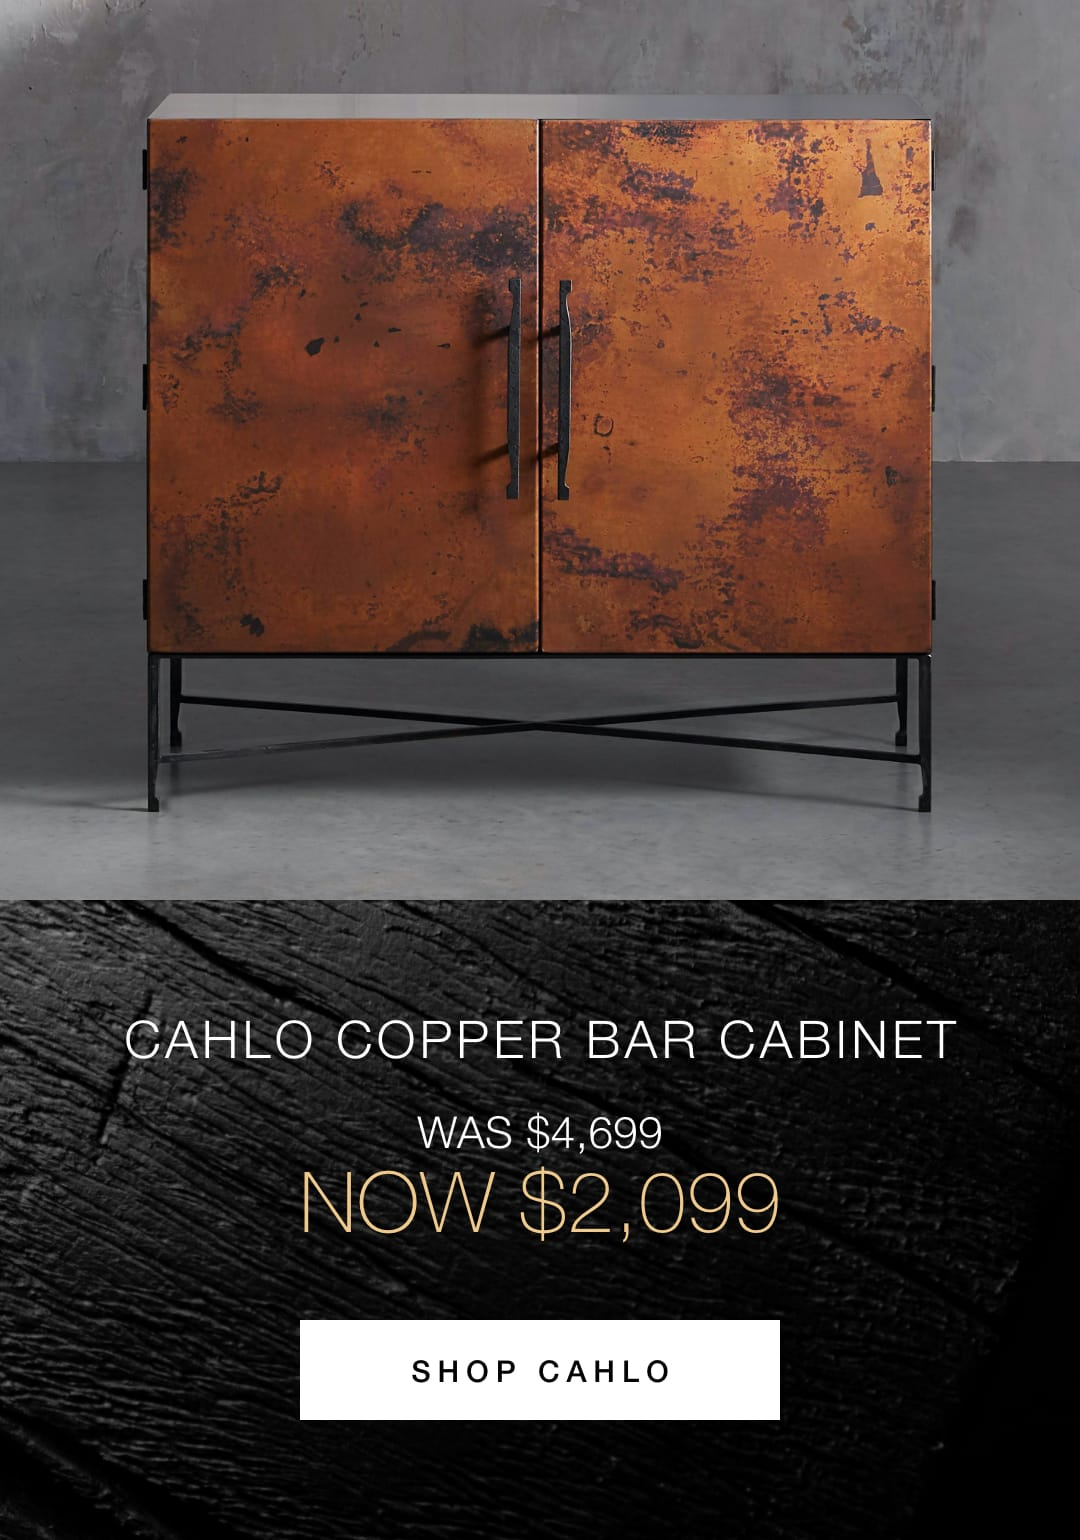 Shop the Cahlo Bar Cabinet